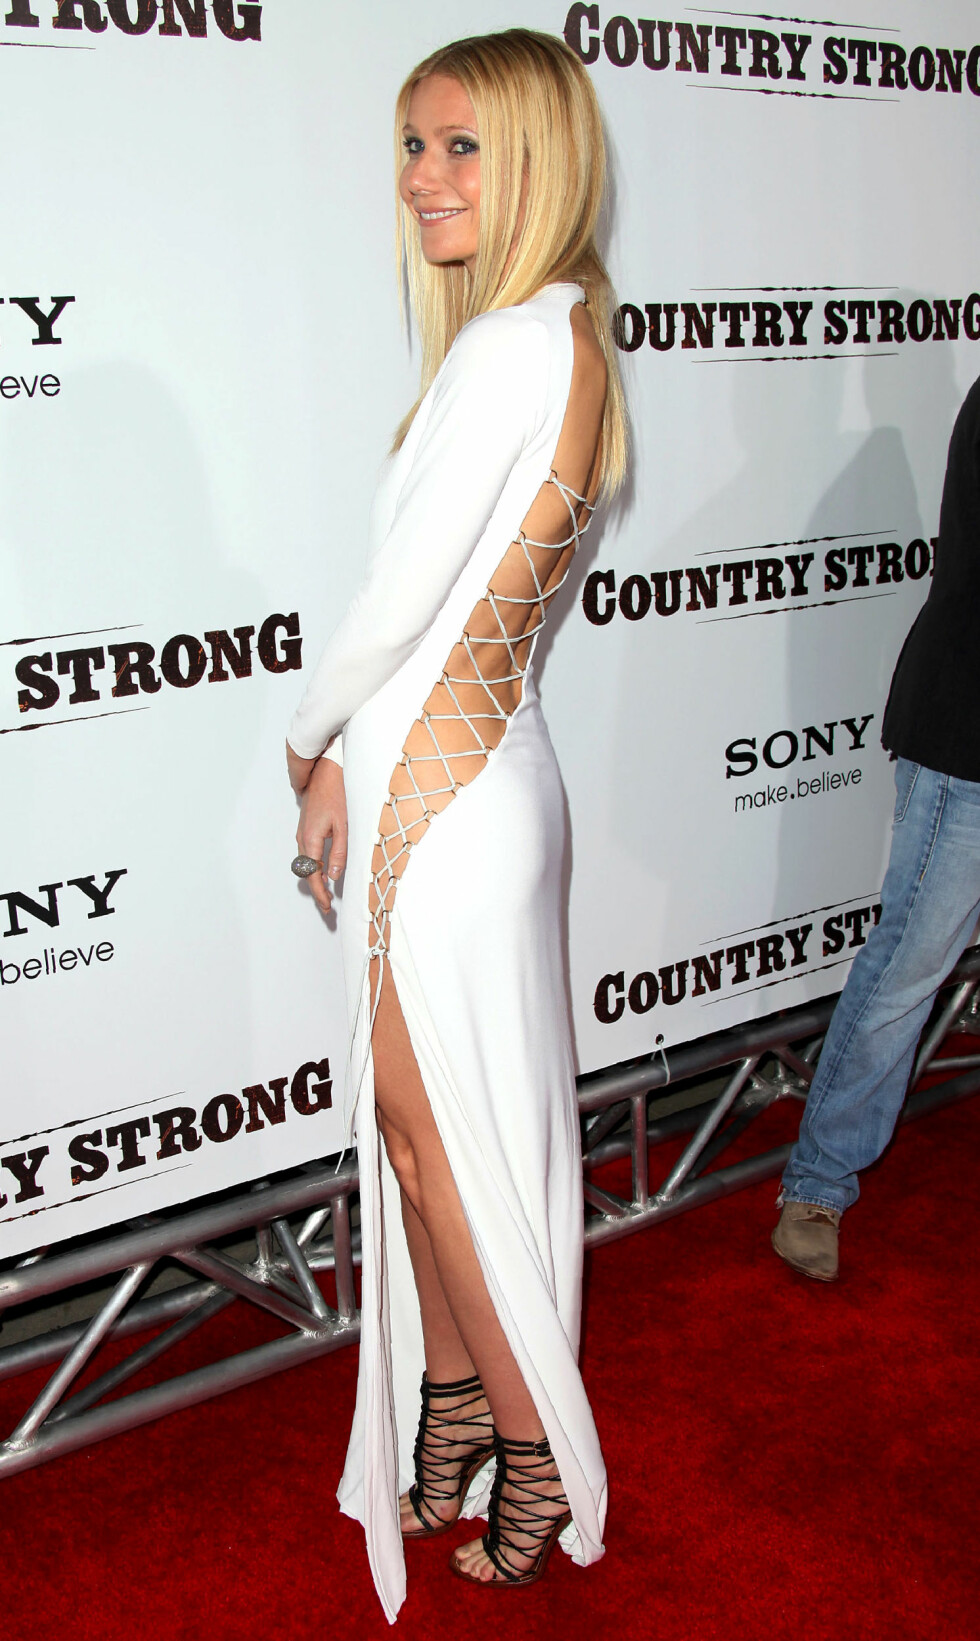 Gwyneth Paltrow, Country Strong Los Angeles premiere 2010. Foto: Broadimage